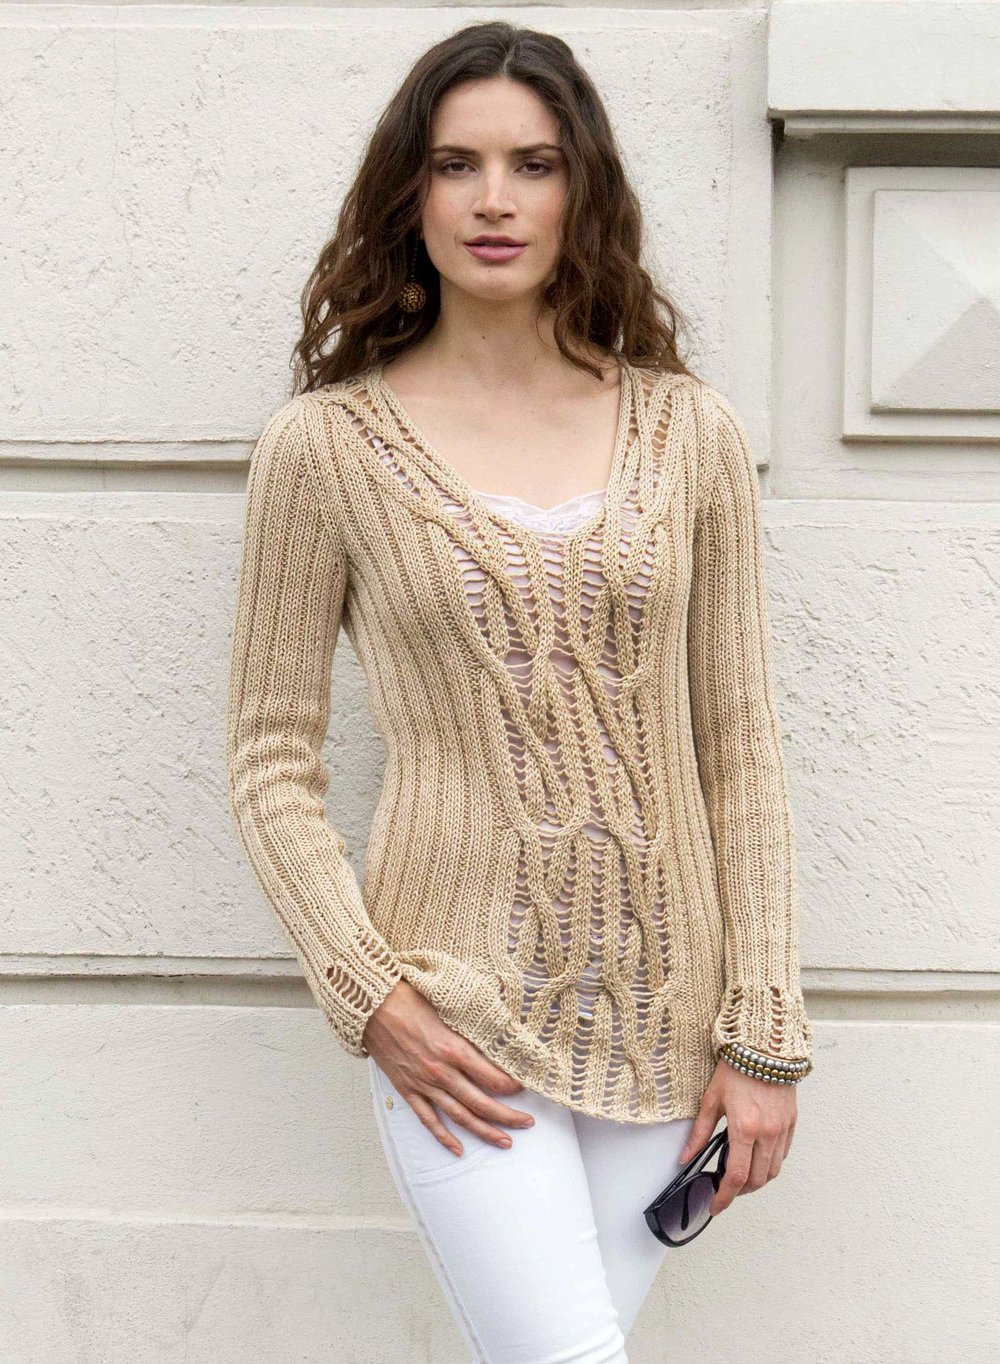 Giuliano&GiusyMarelli_Pull Onde di sabbia_Front_Knit 'd' Crochet Collection_.jpg